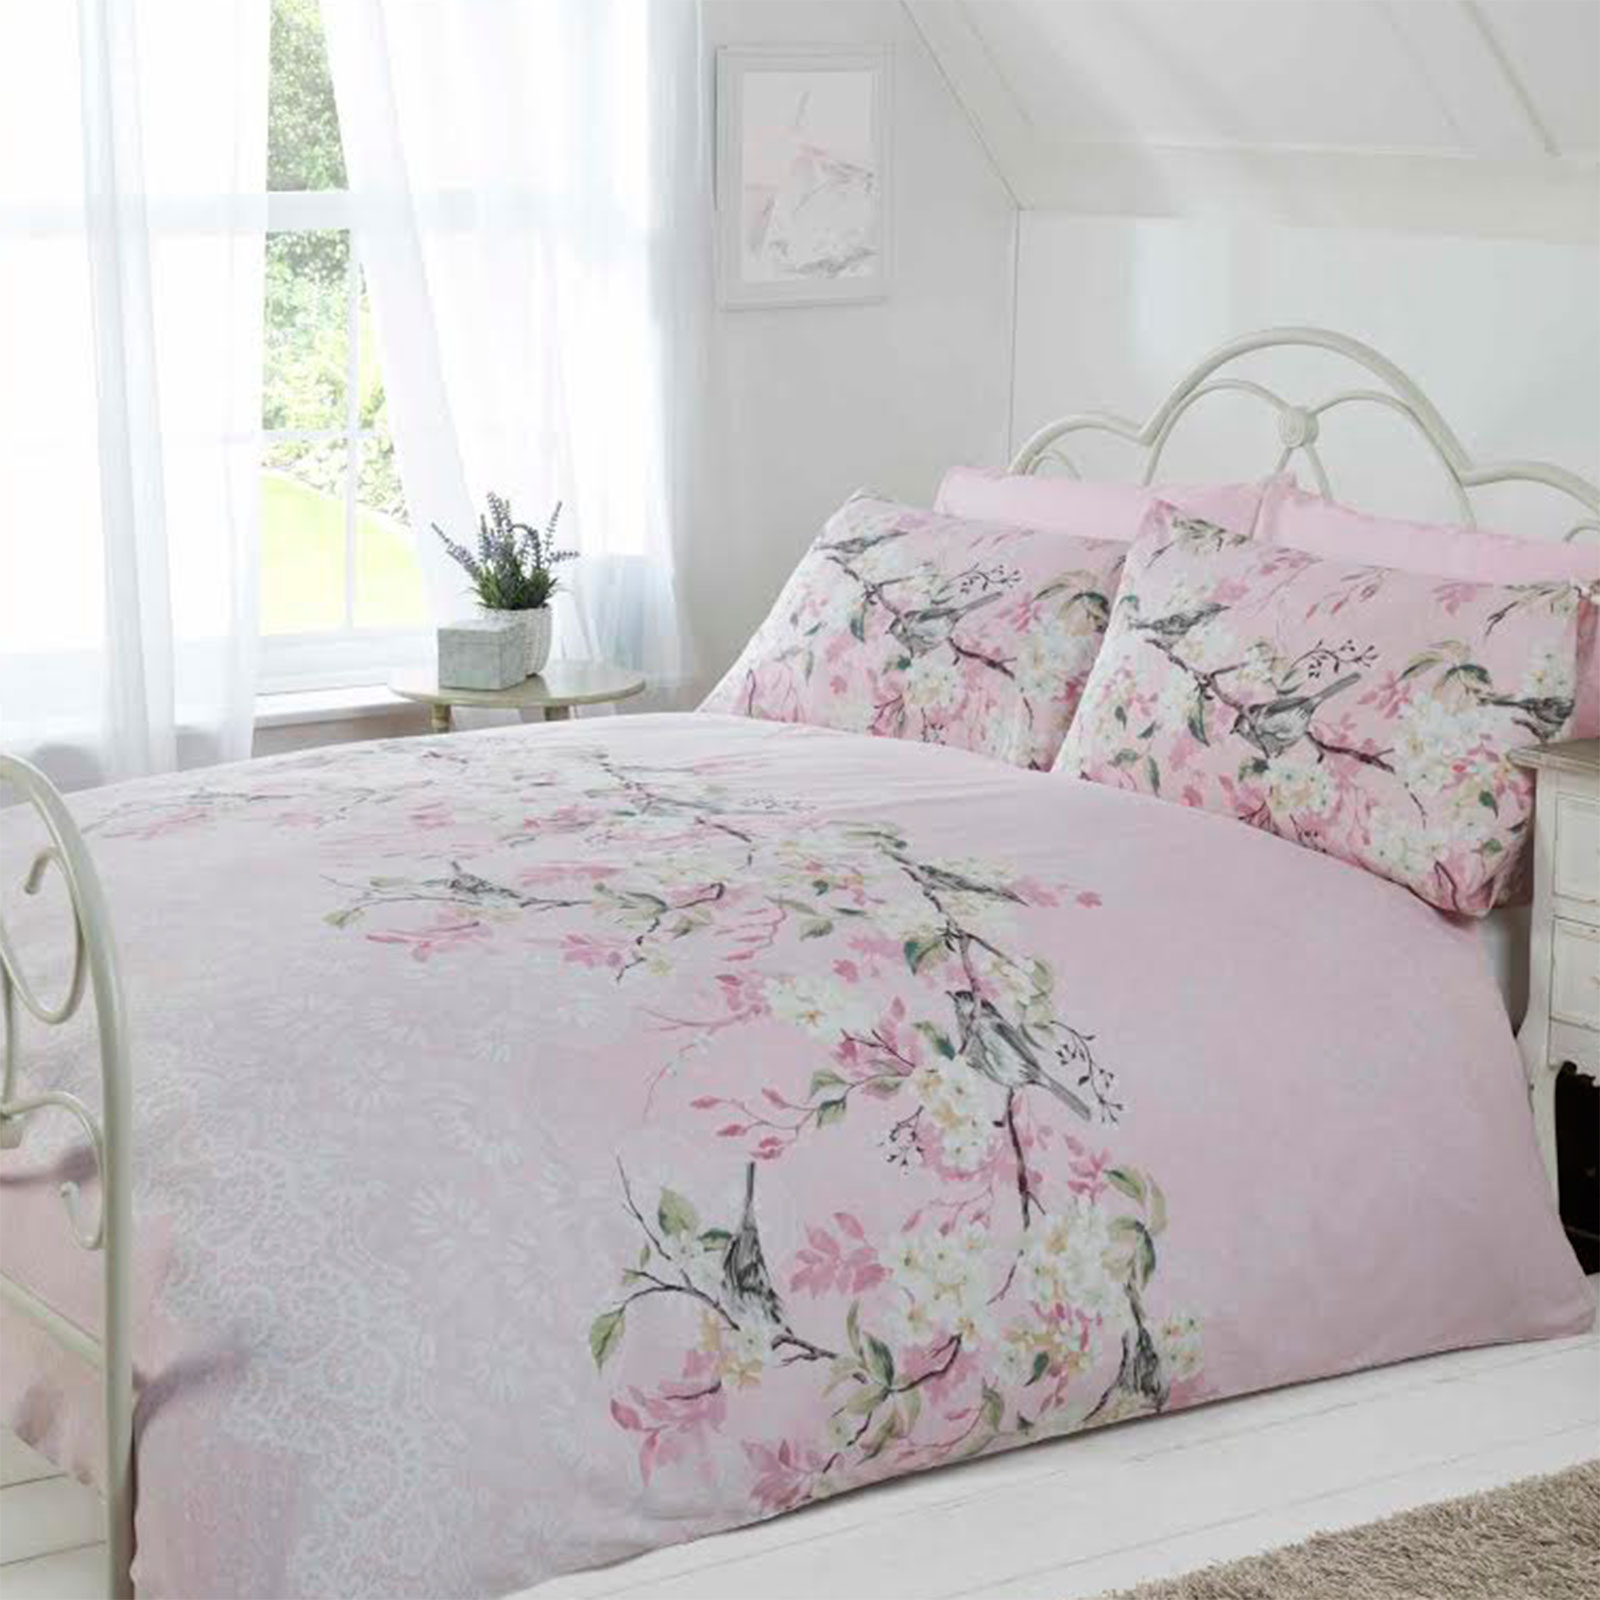 pretty soft duvet cover set with cherry blossom floral